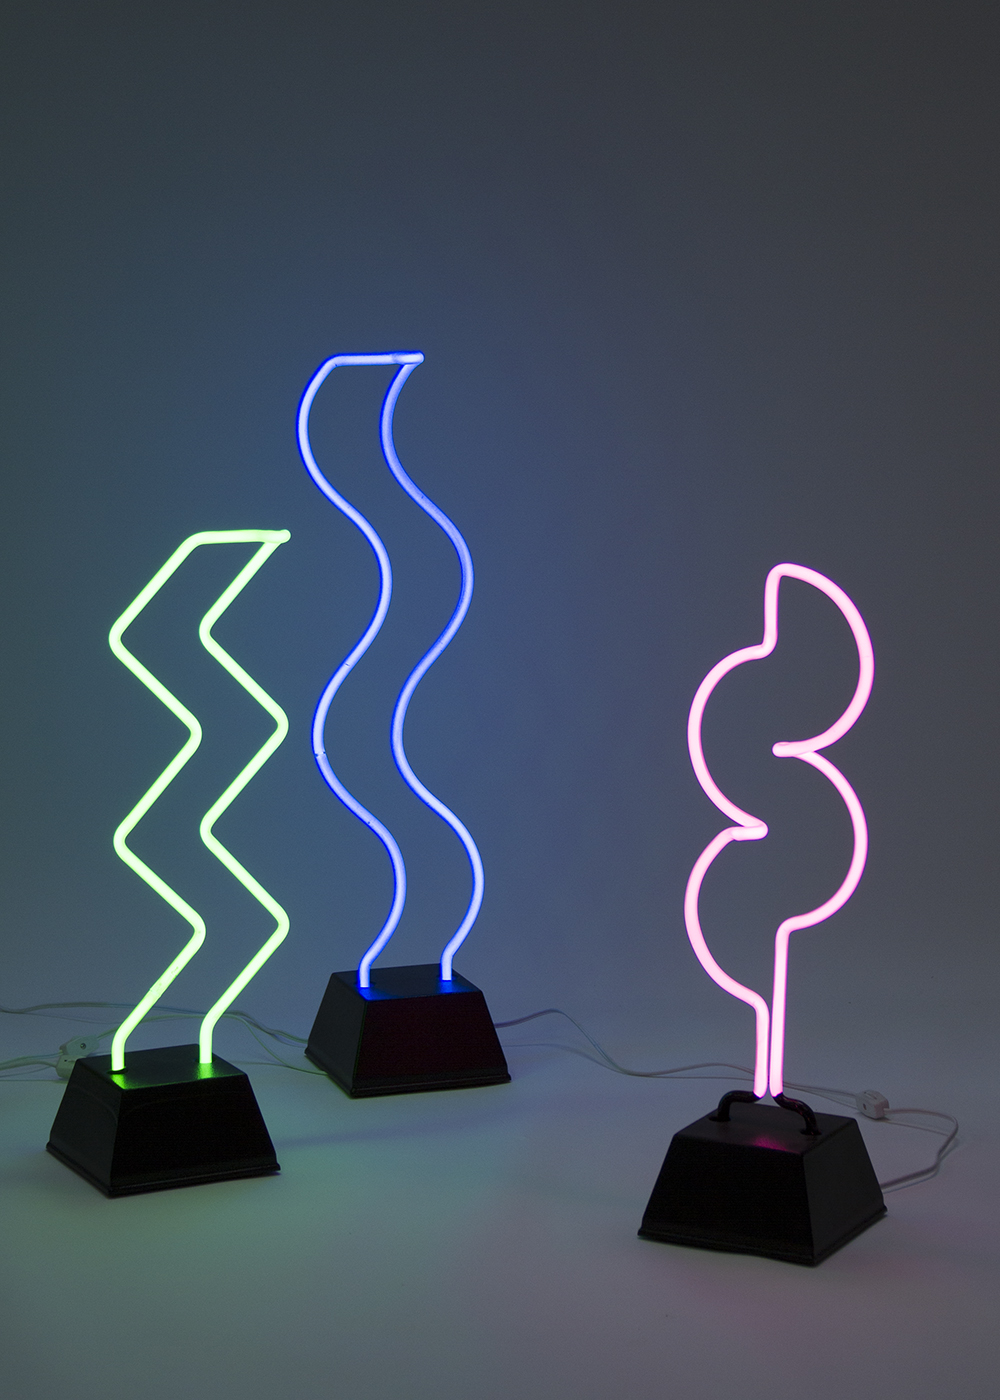 Neon lamps - 18-24 inches tall